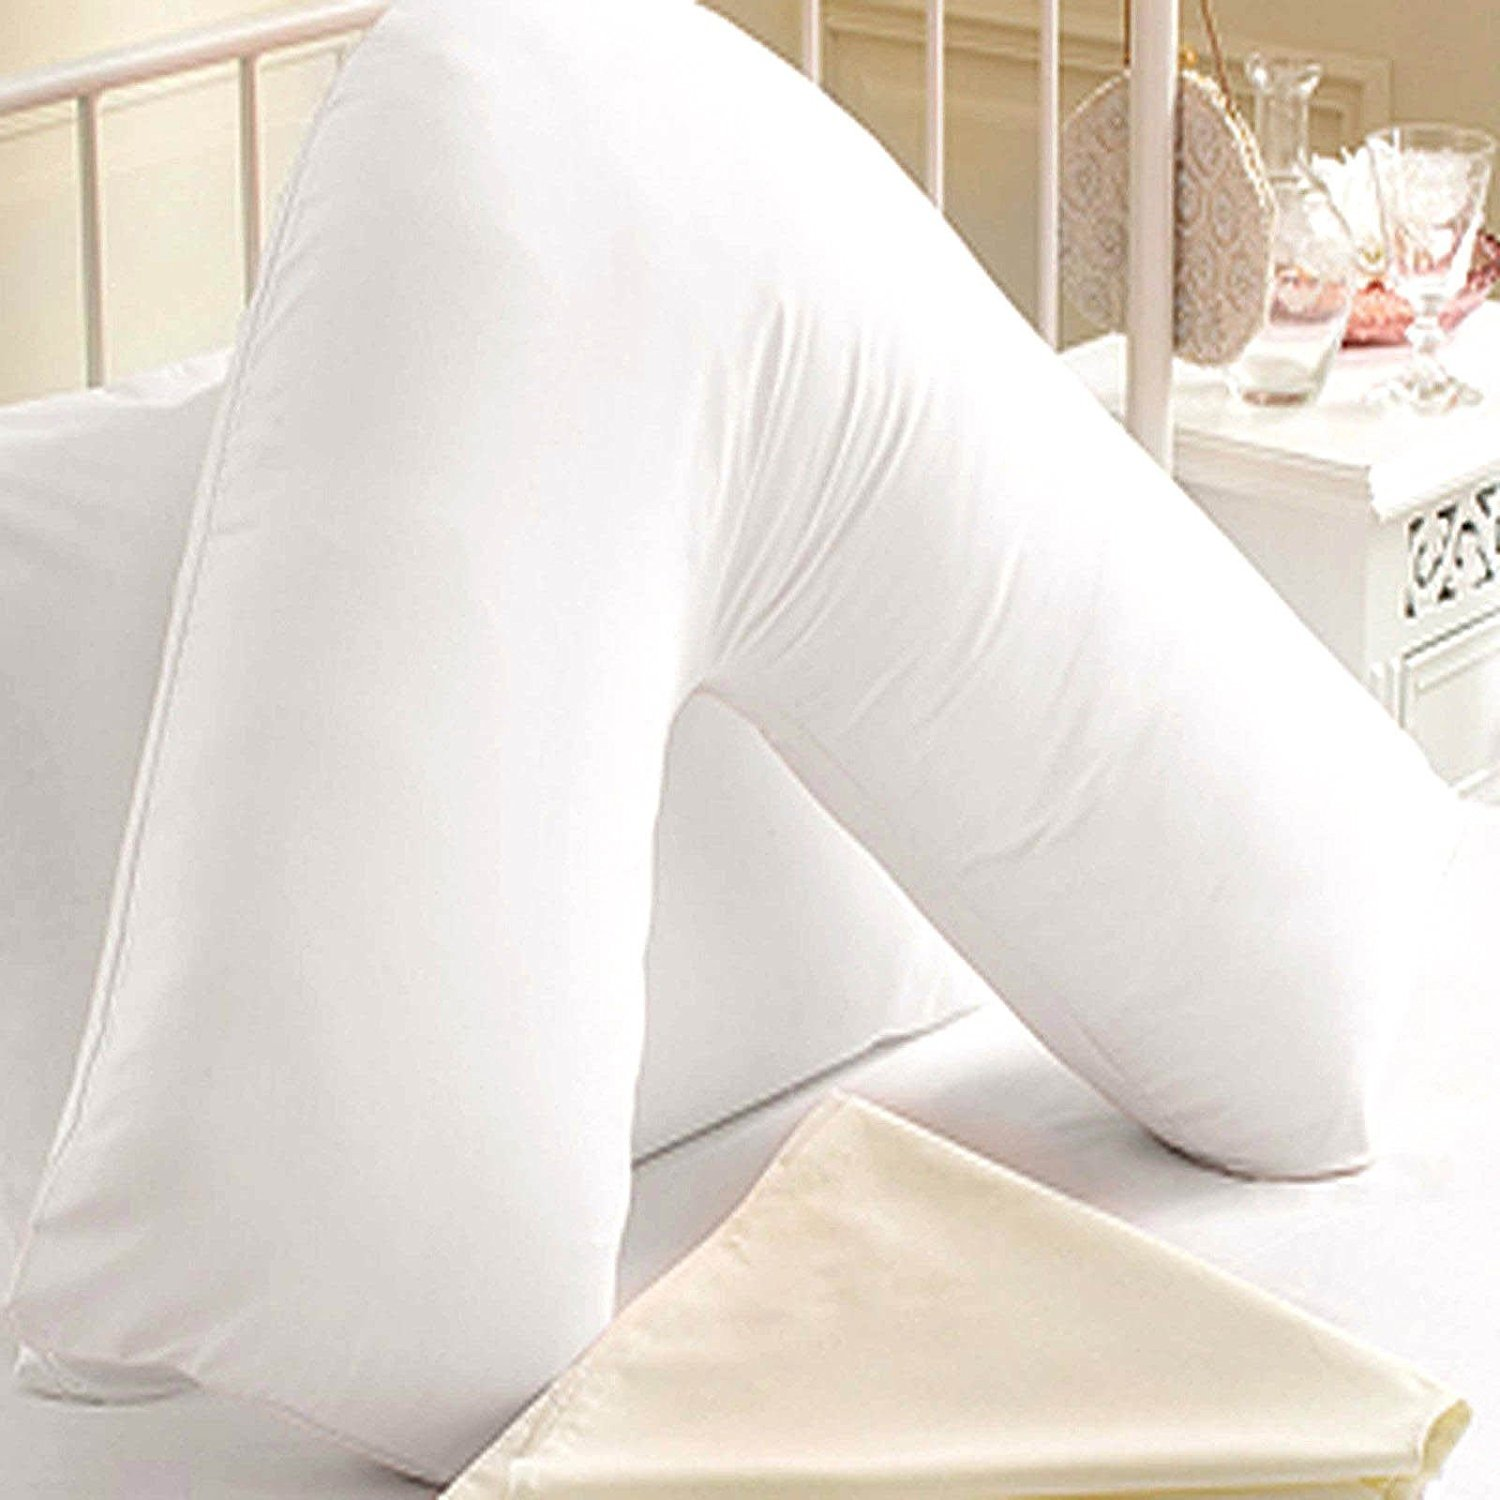 Iyan Linens Ltd Large Back & Neck Nursing Support Non Allergenic Orthopedic/Pregnancy V- Shaped Maternity Pillow